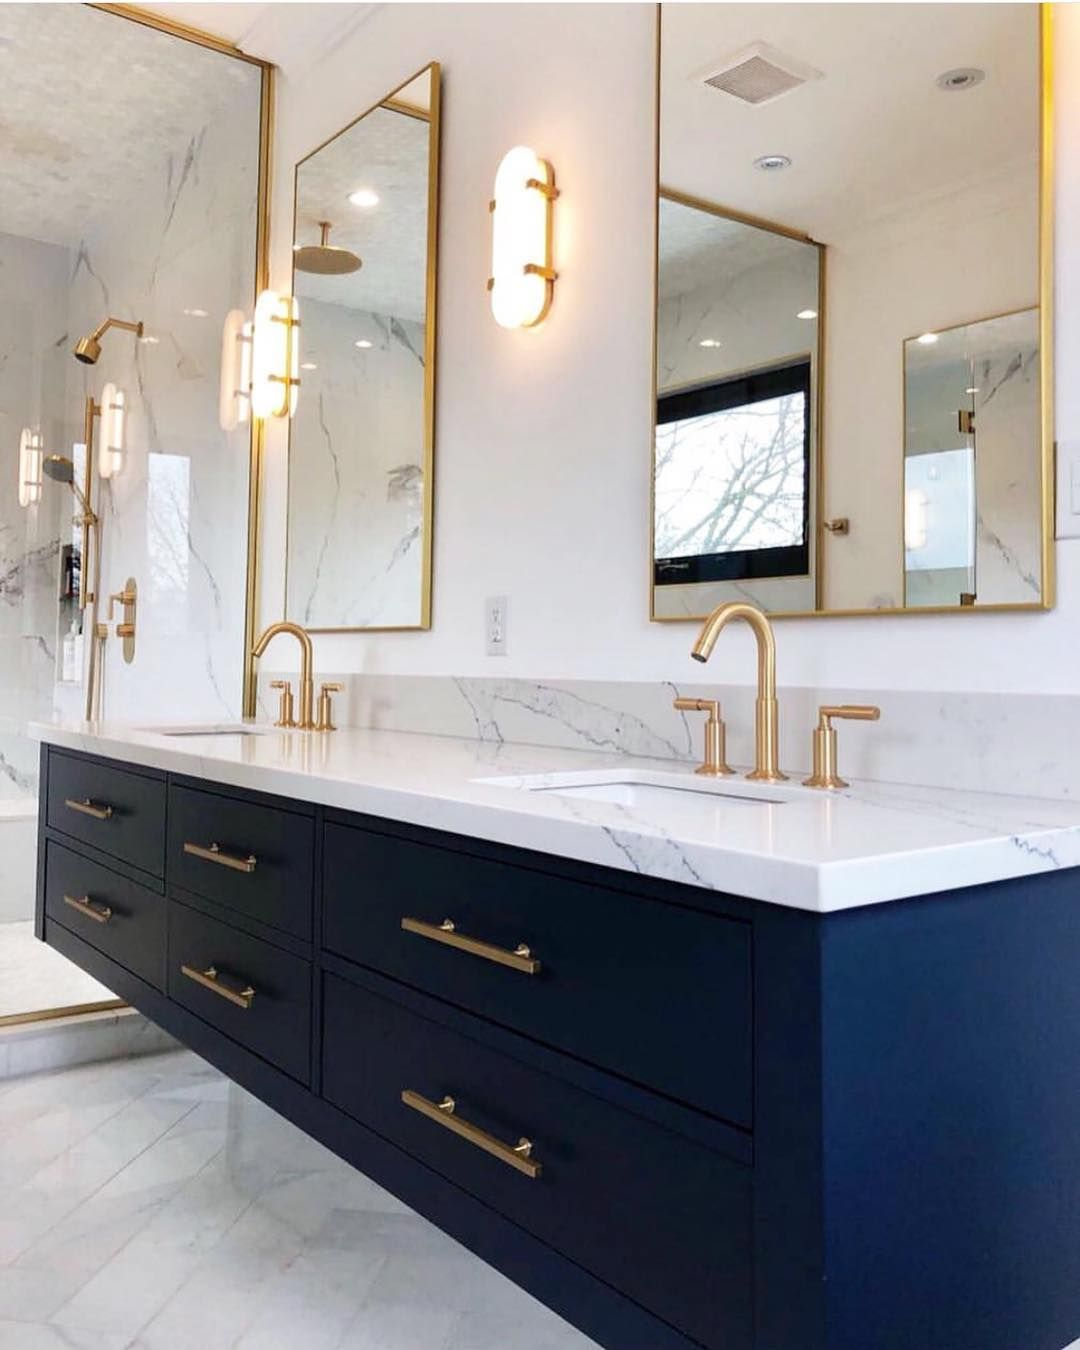 Bathrooms Of Instagram On Instagram Floating Vanity Done Right By Bonbuildinggroup F Floating Bathroom Vanities Bathroom Design Bathroom Interior Design